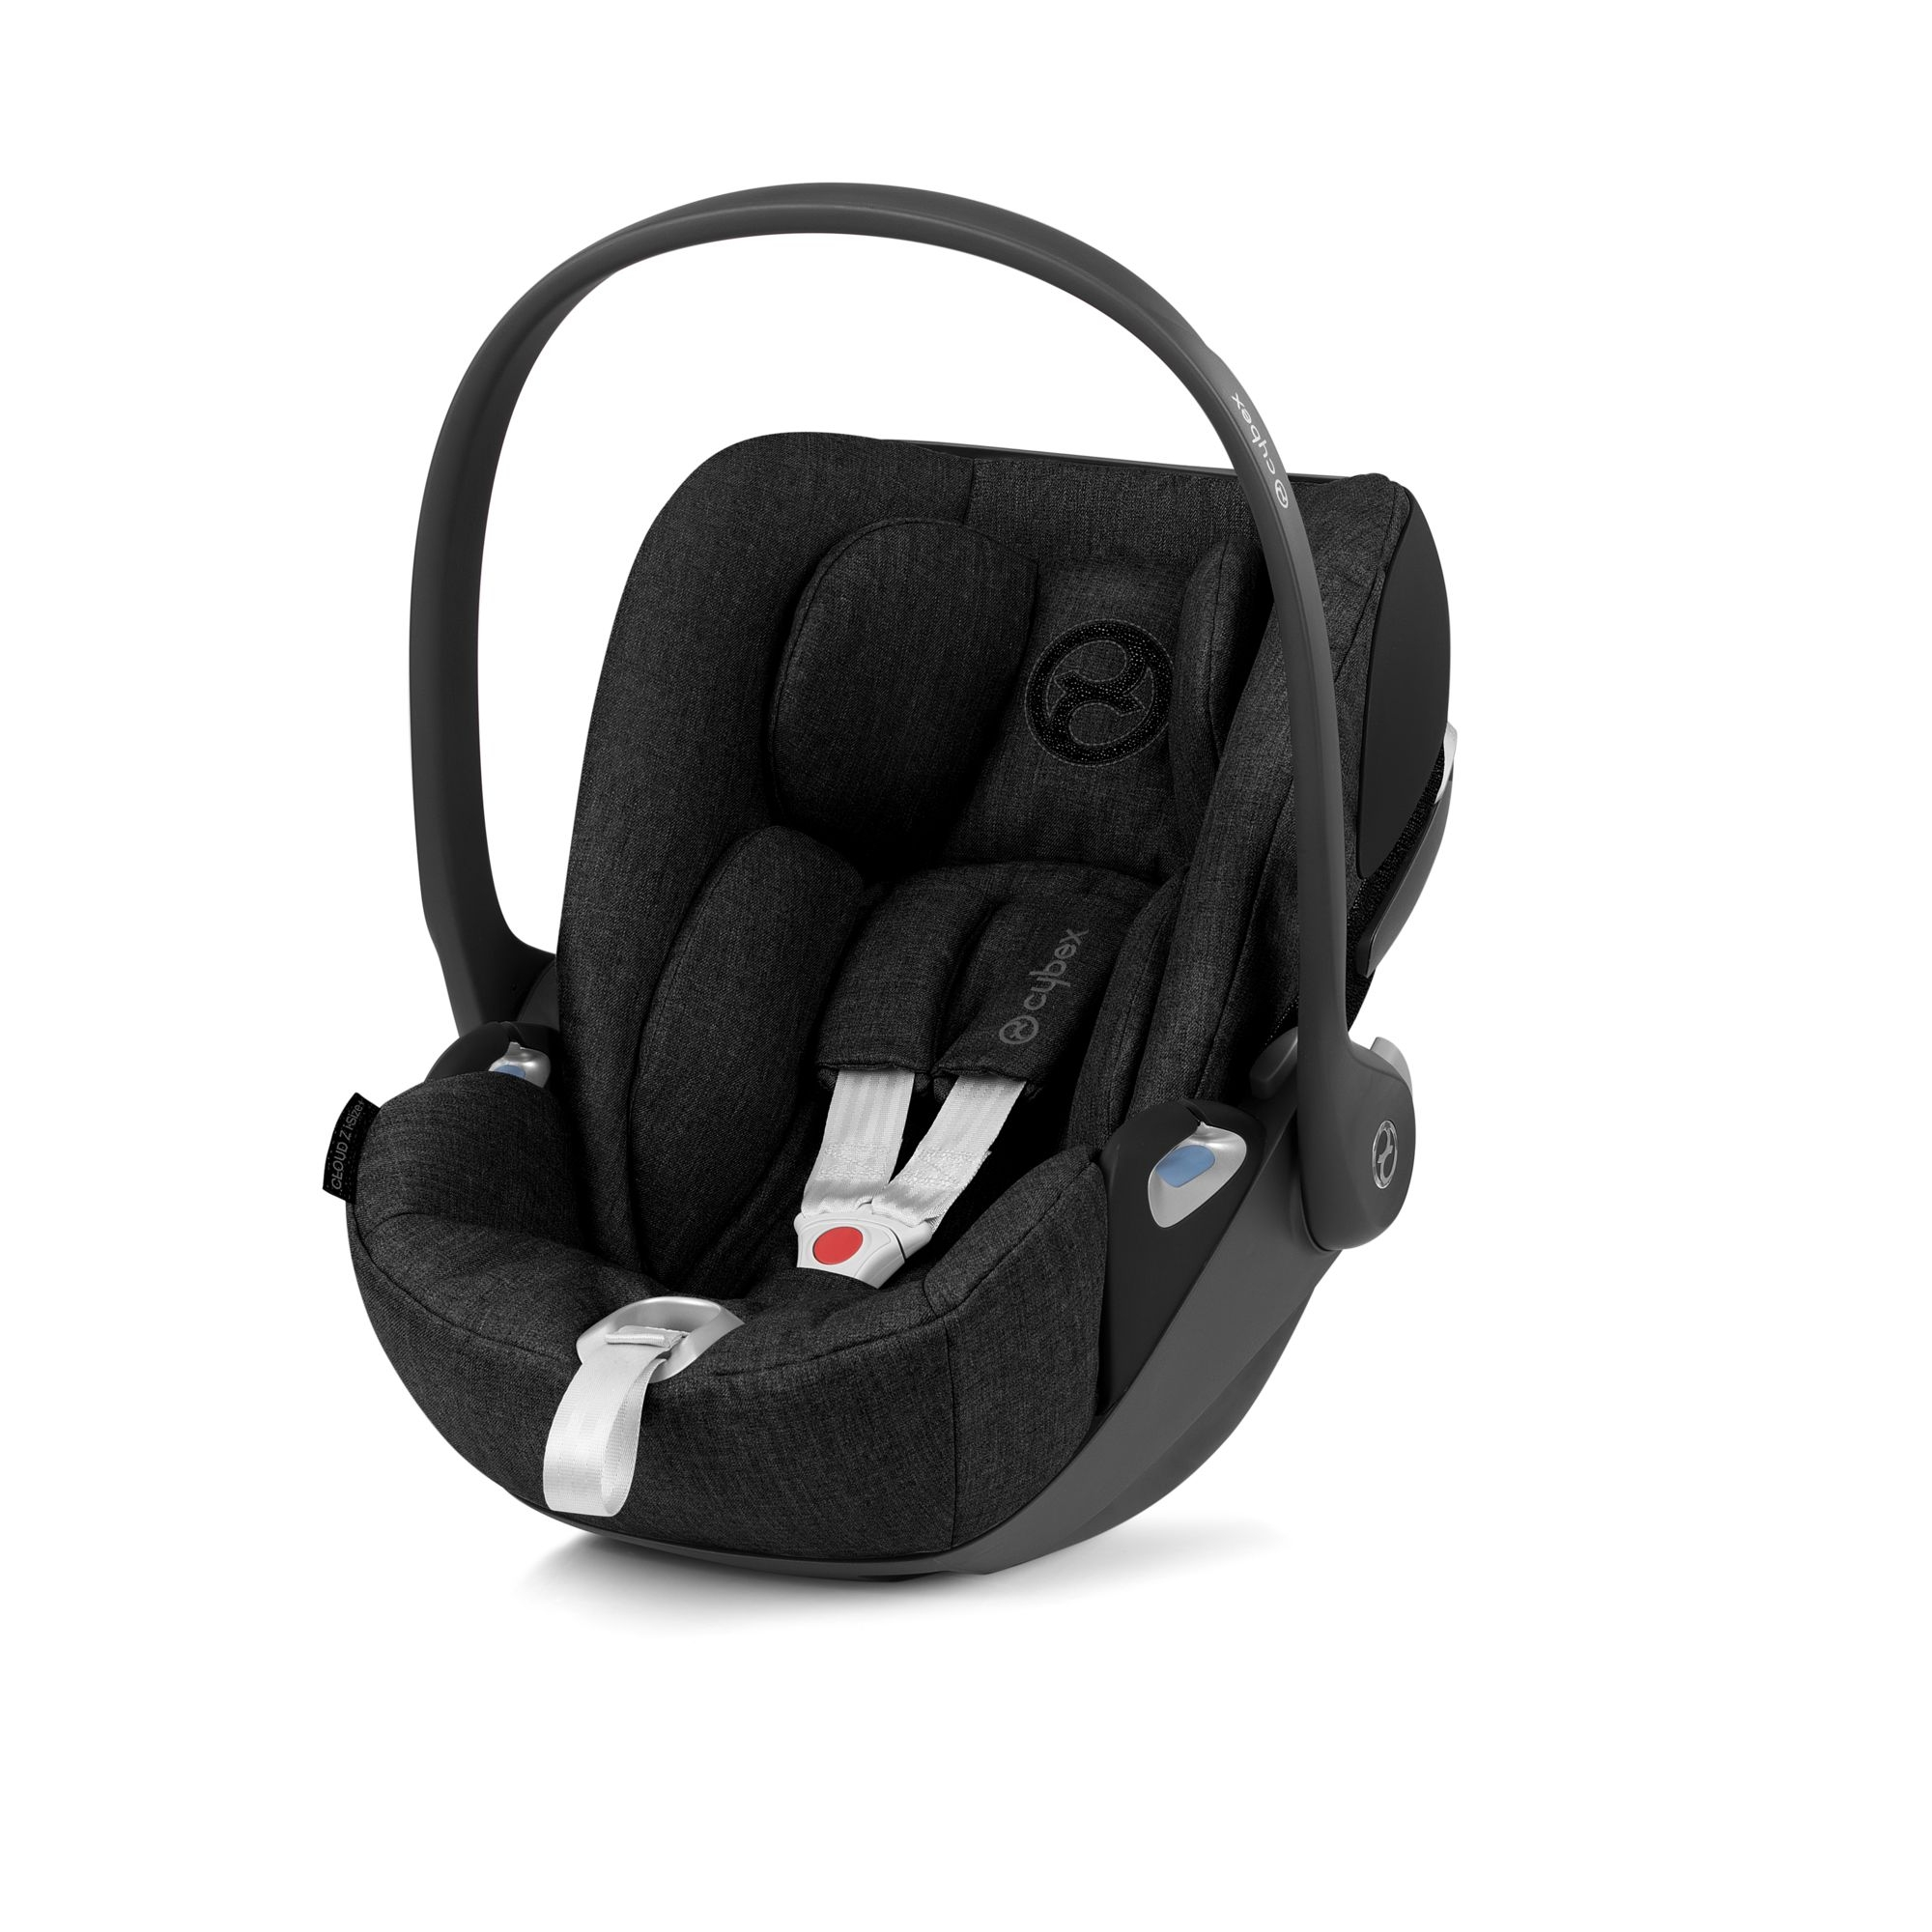 Автокресло Cybex Cloud Z i-Size Plus Stardust Black, черный